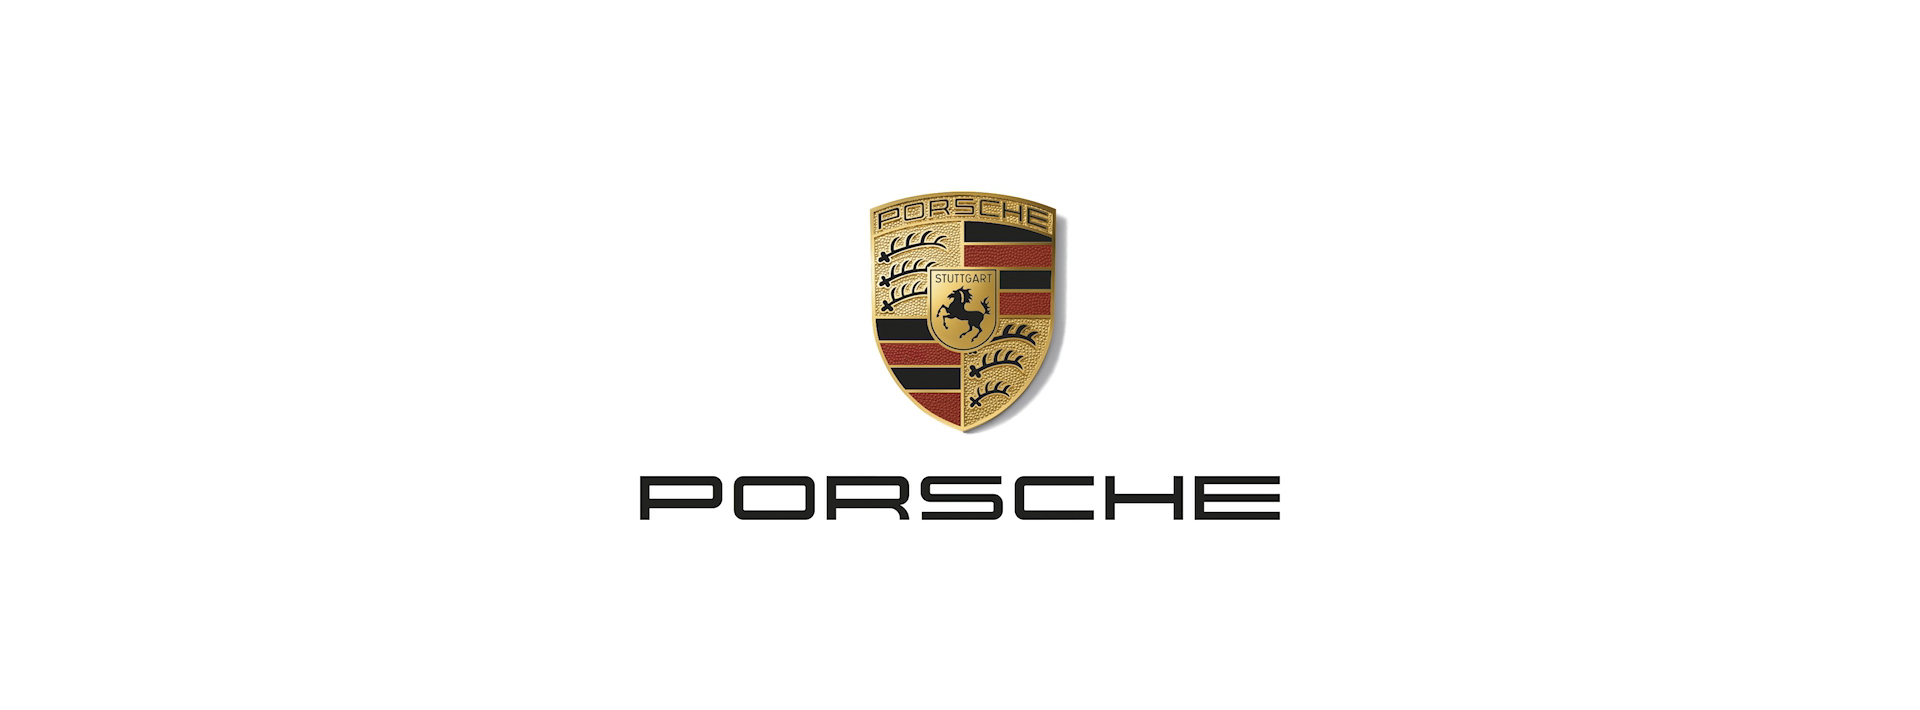 Porsche_E-Performance_Dir_Cut_1.1.43.jpg